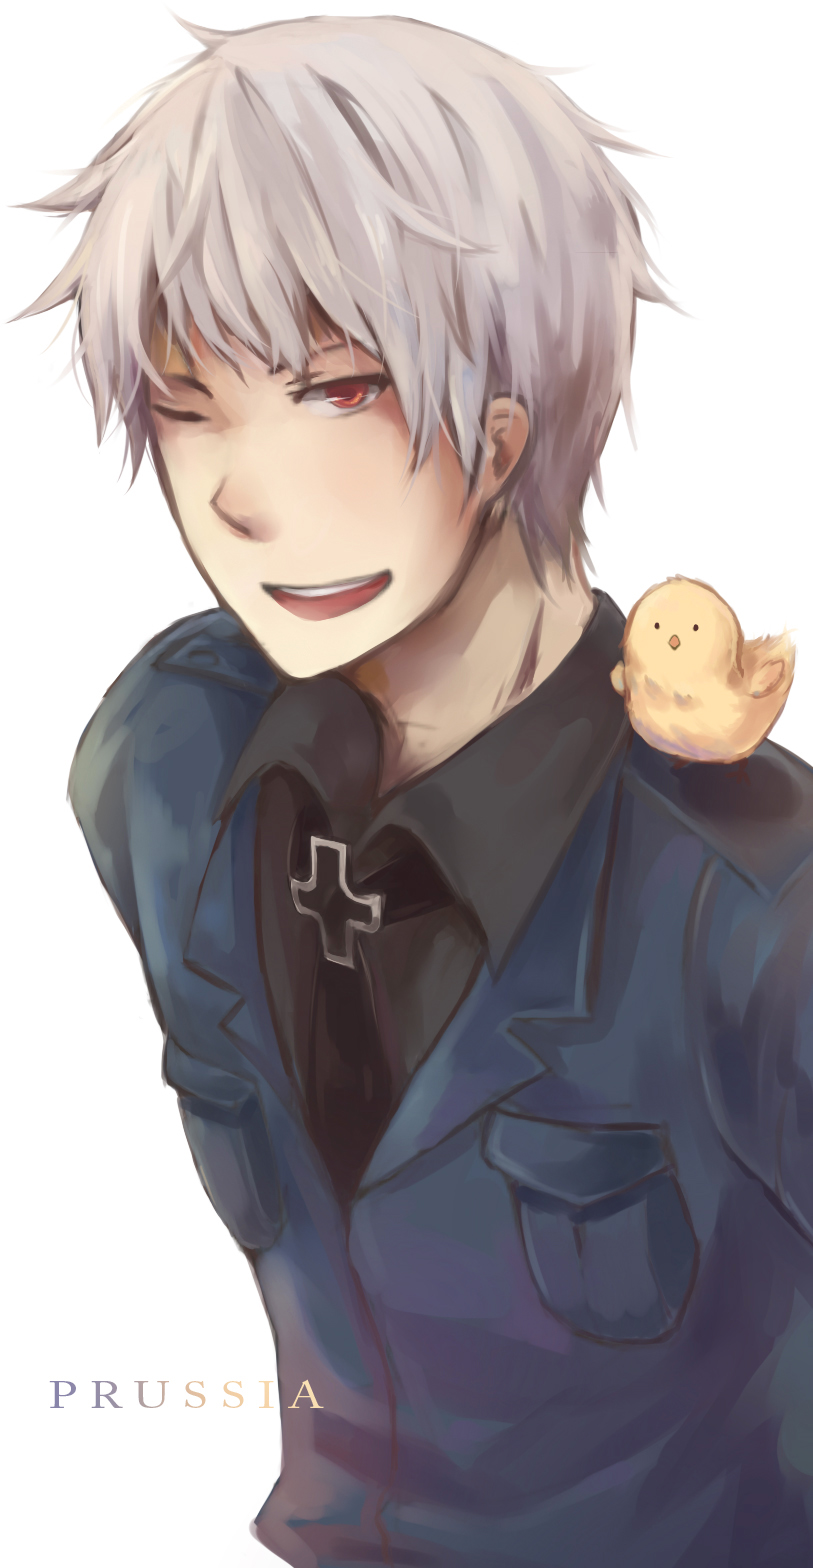 APH Prussia by Mano-chan